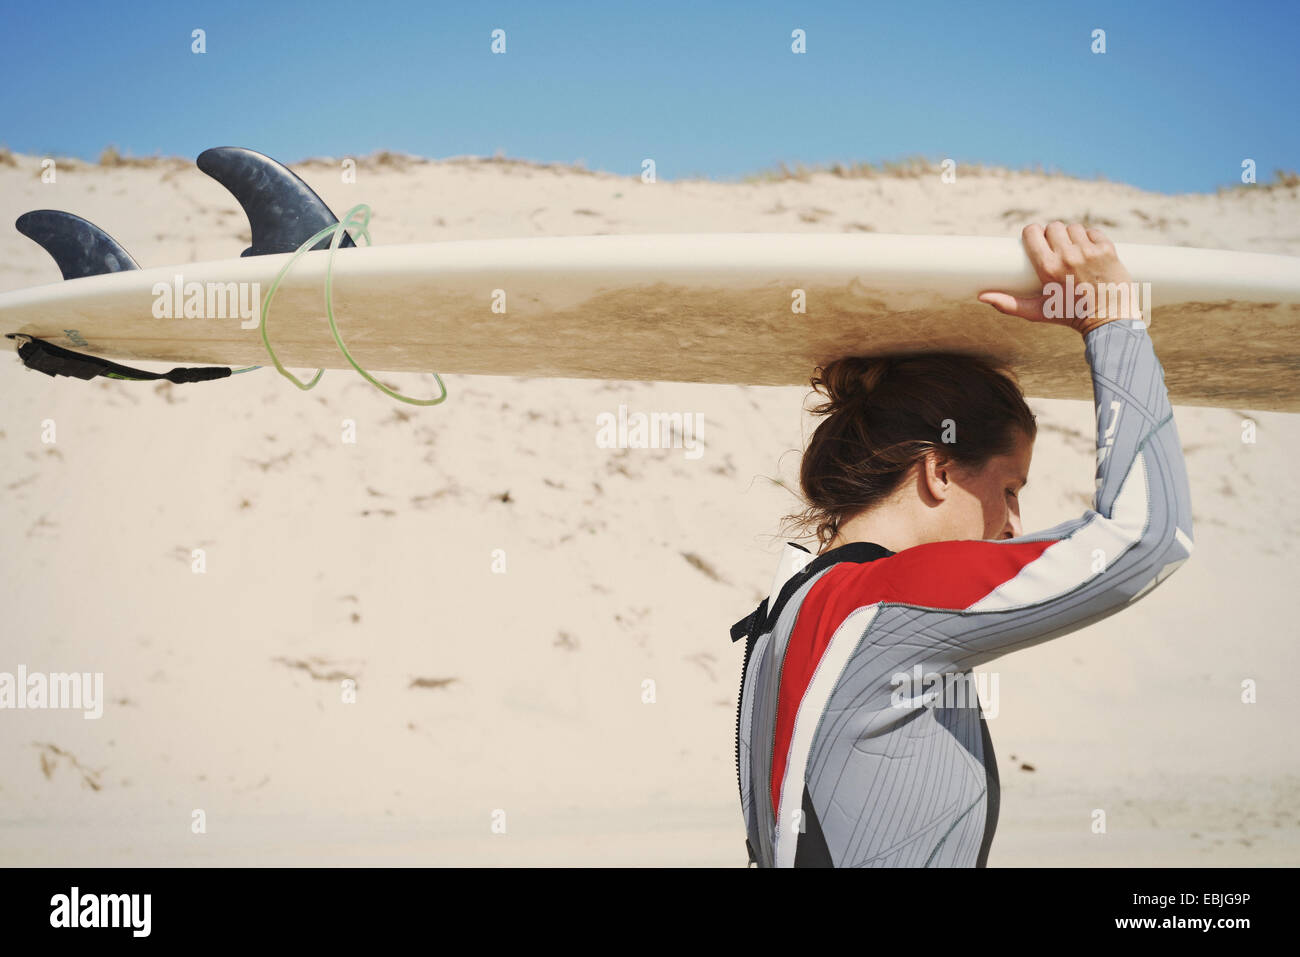 Surfer carrying surfboard on head at beach, Lacanau, France - Stock Image